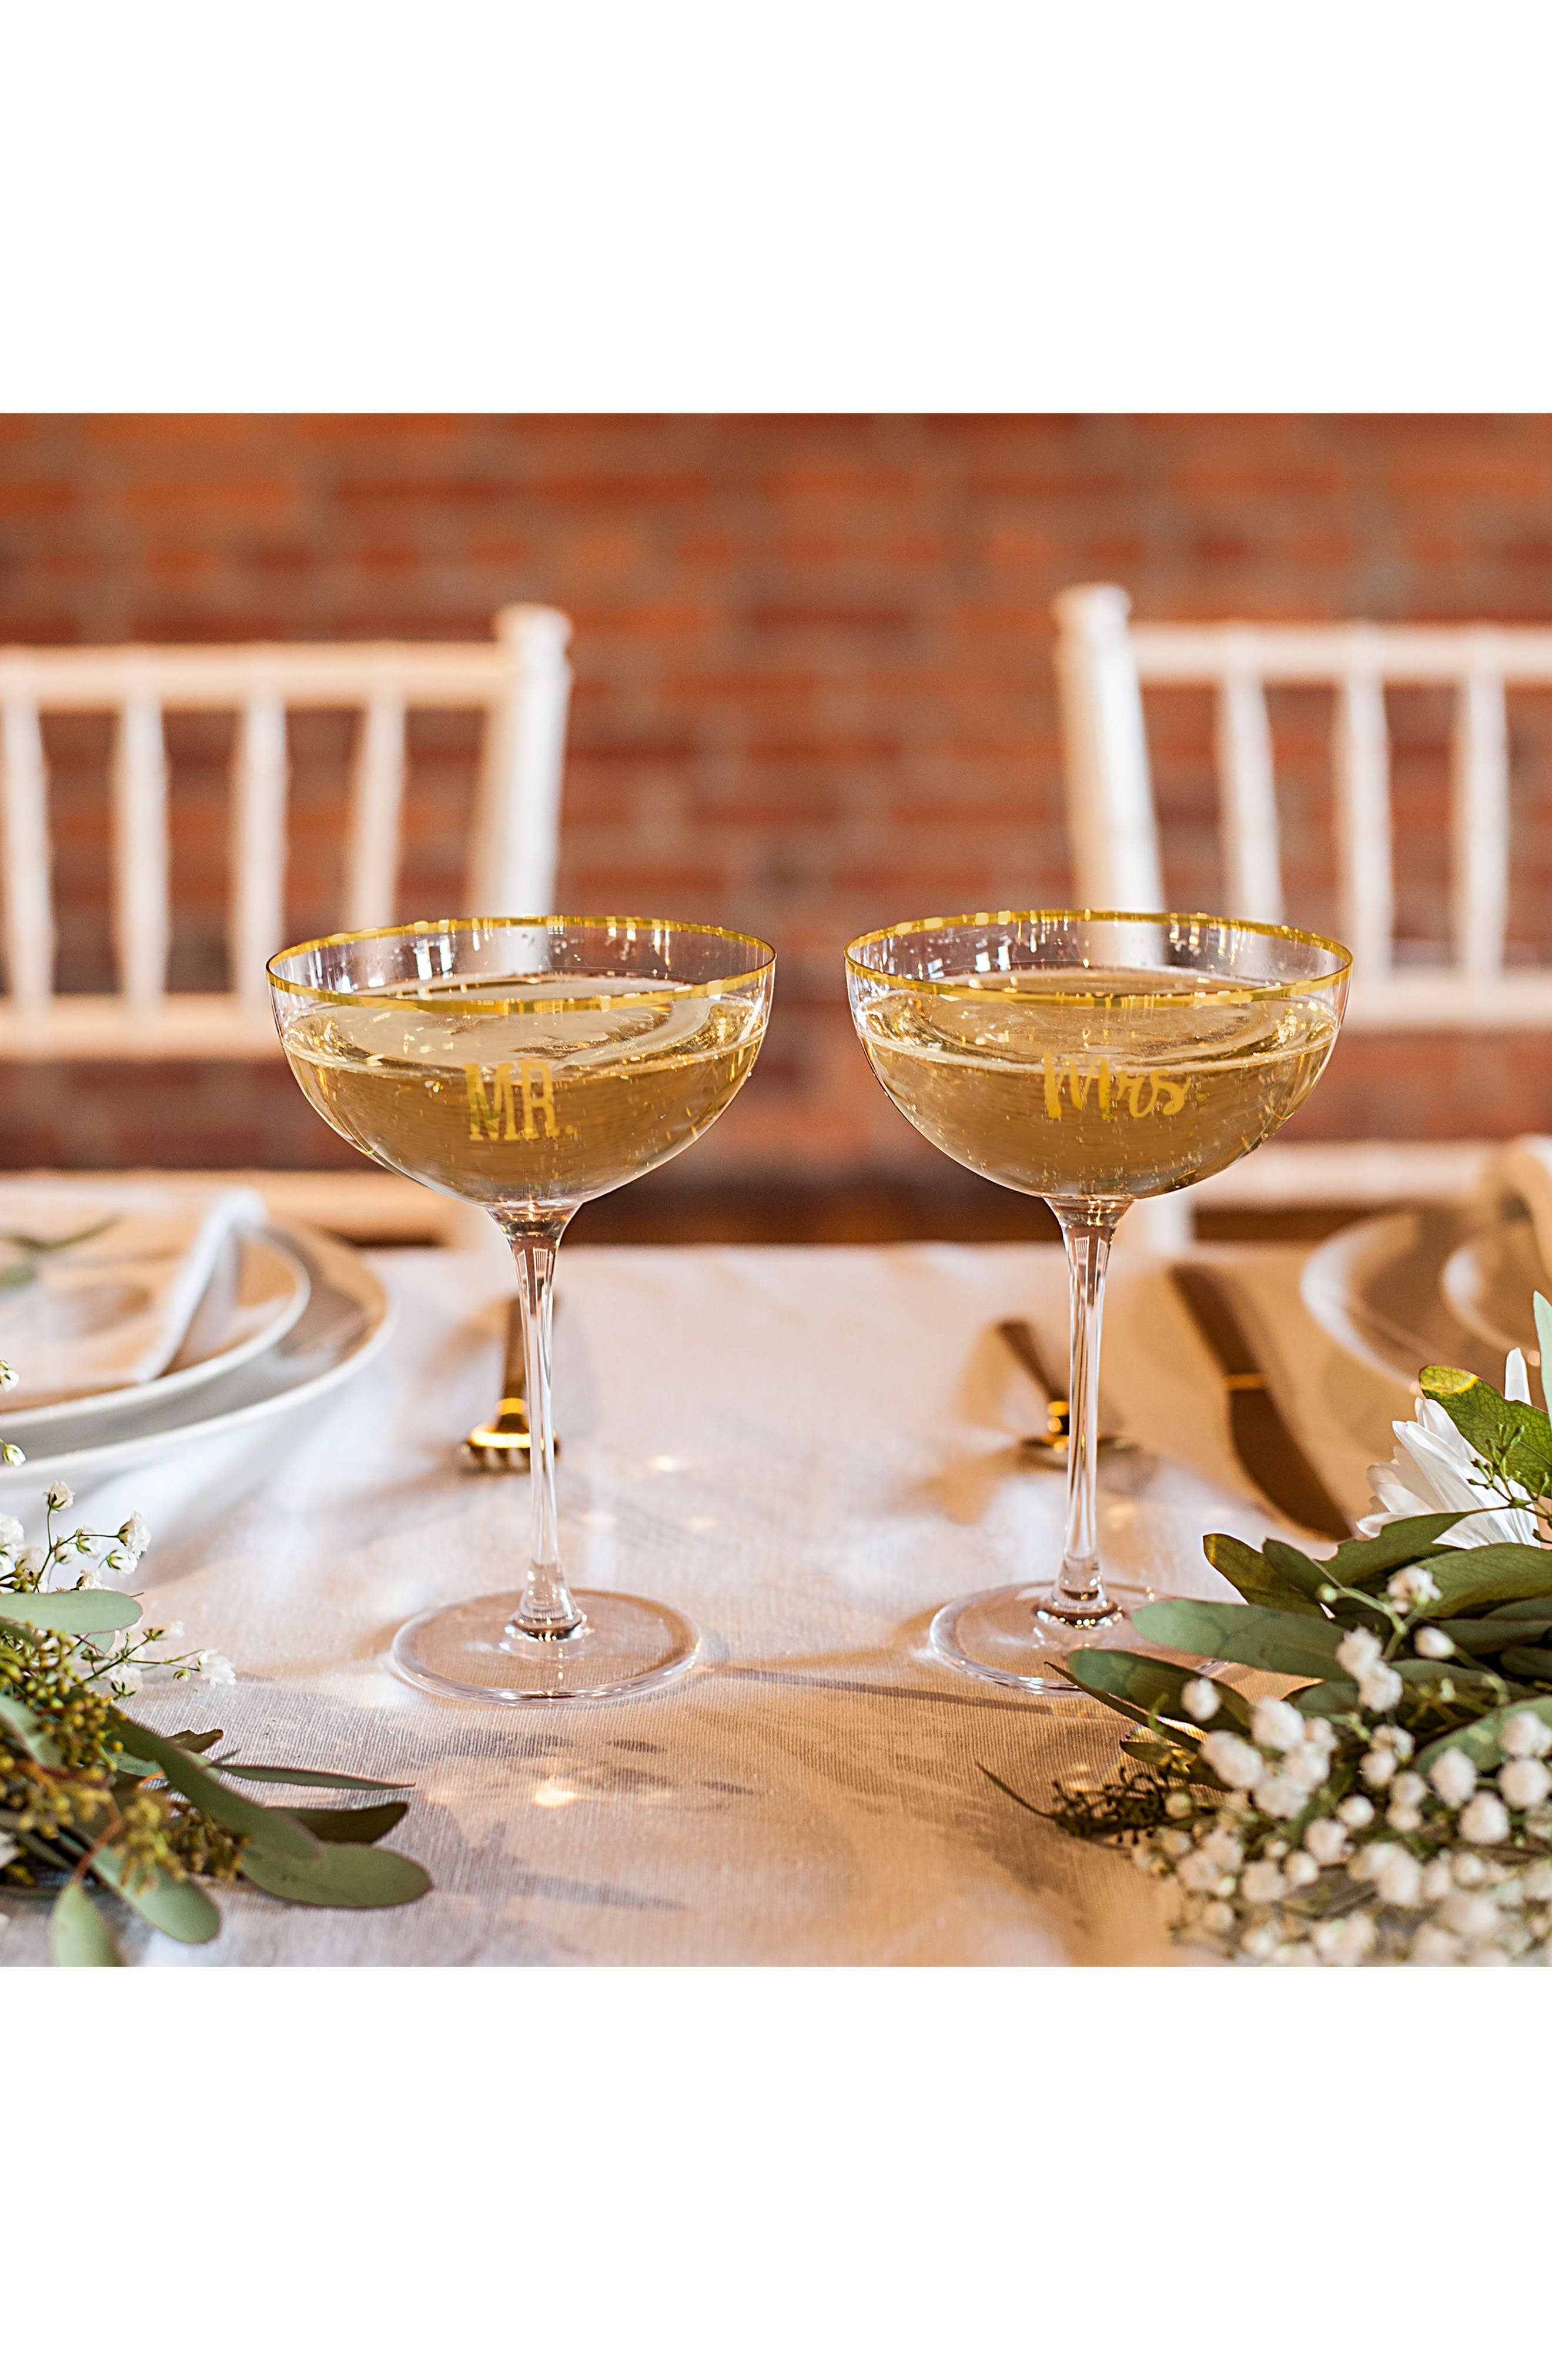 Mr. & Mrs. Set of 2 Champagne Coupe Toasting Glasses,                             Alternate thumbnail 2, color,                             710